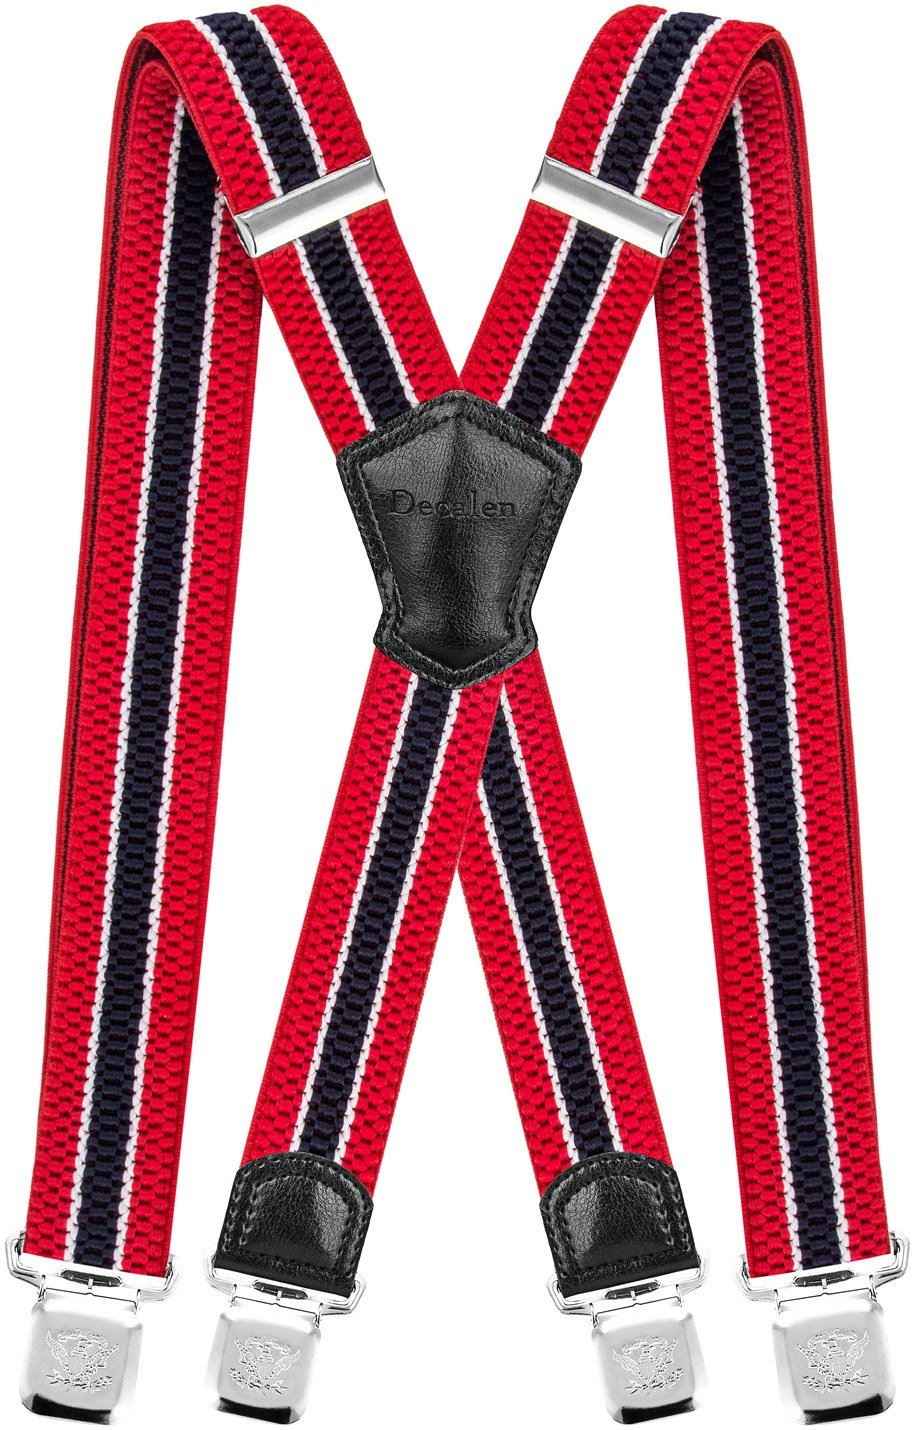 Decalen Mens Suspenders Very Strong Clips Heavy Duty Braces Big and Tall X Style (Red White Navy Blue)